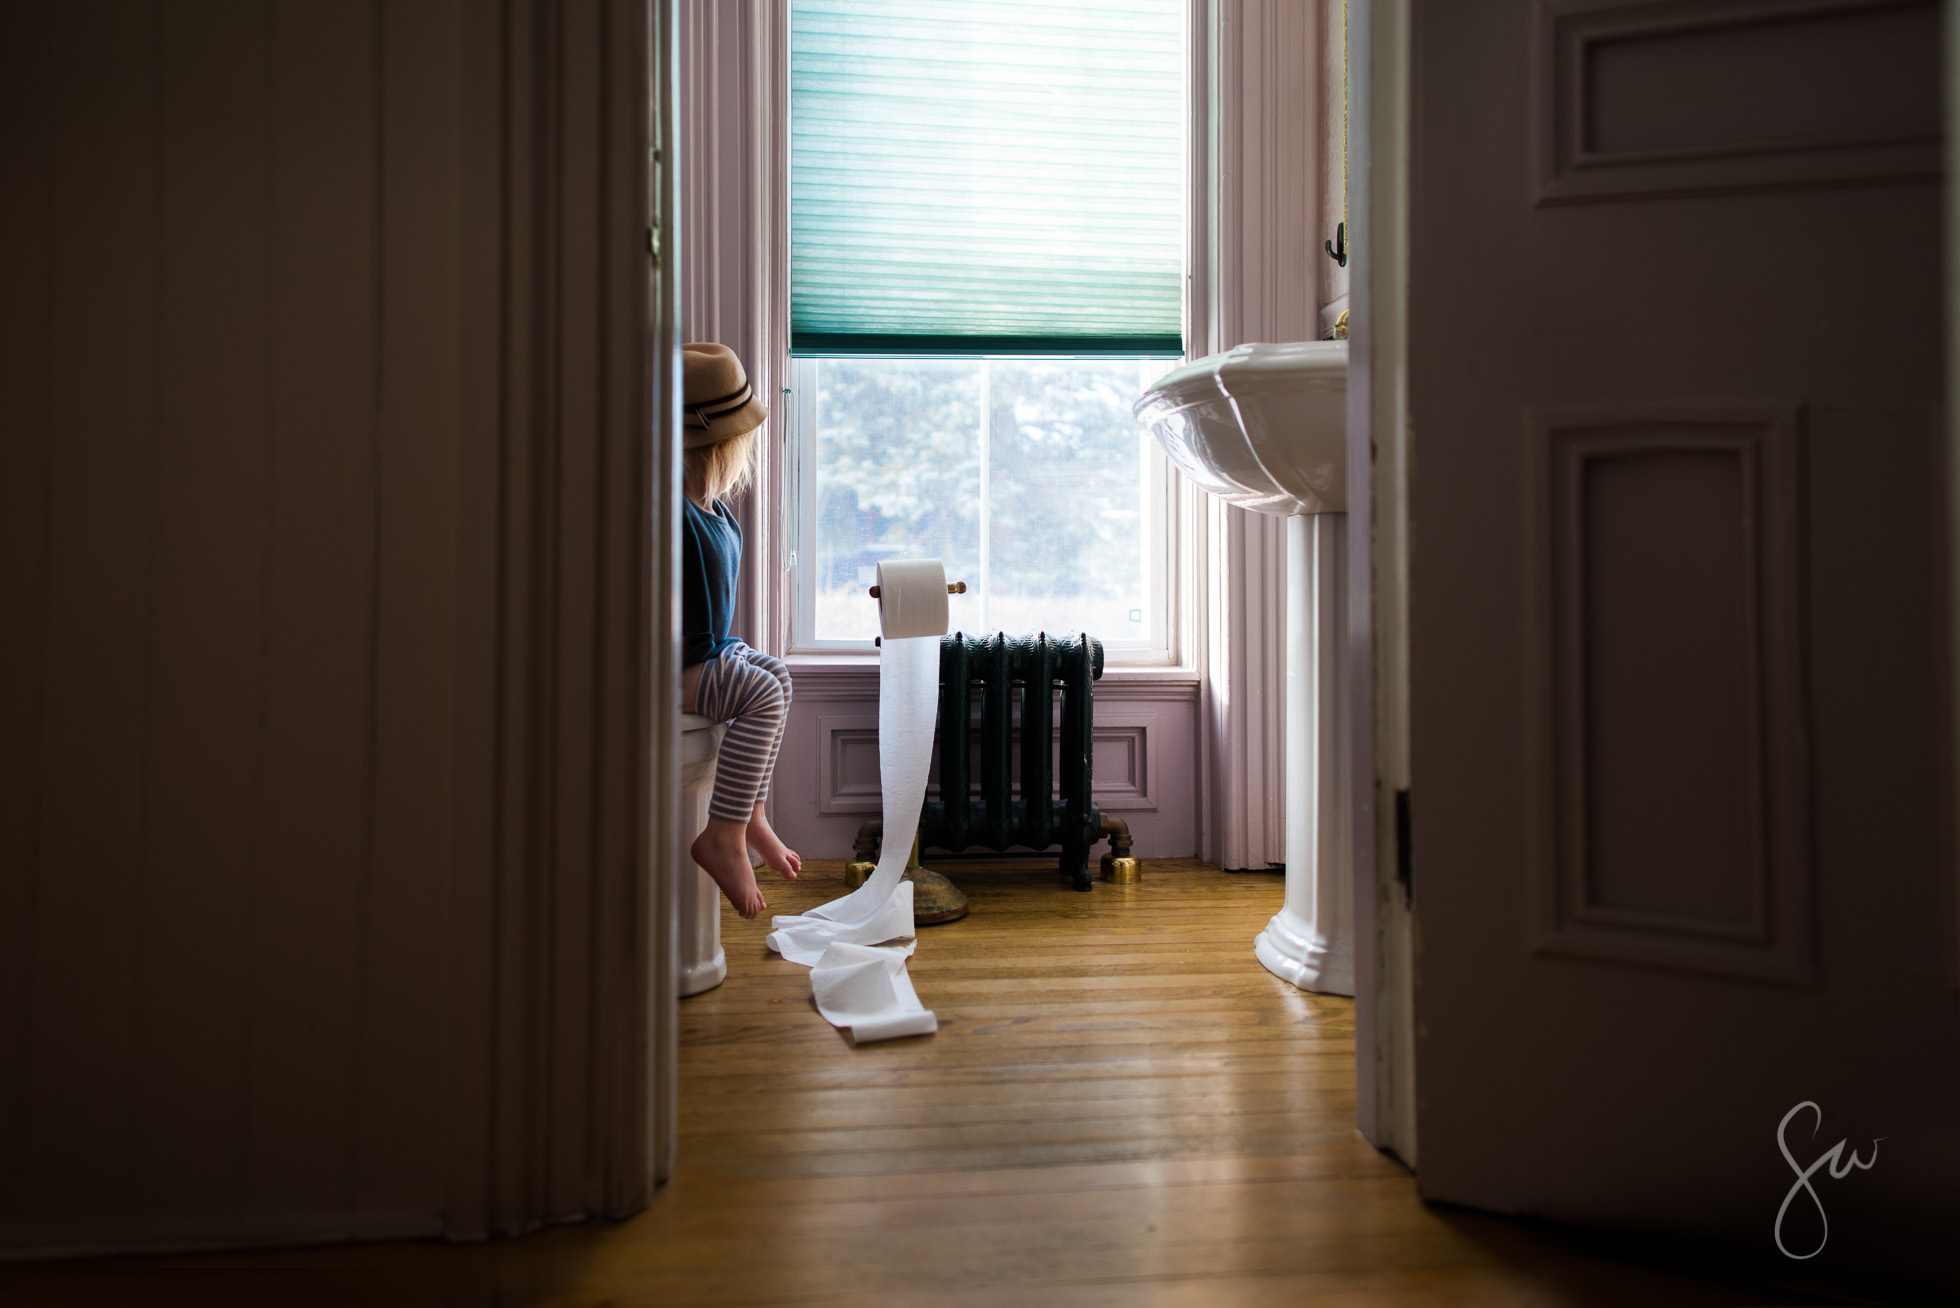 Everyday-Color-Child-Photography-with-Toddler-Potty-Training-near-Window-Light-